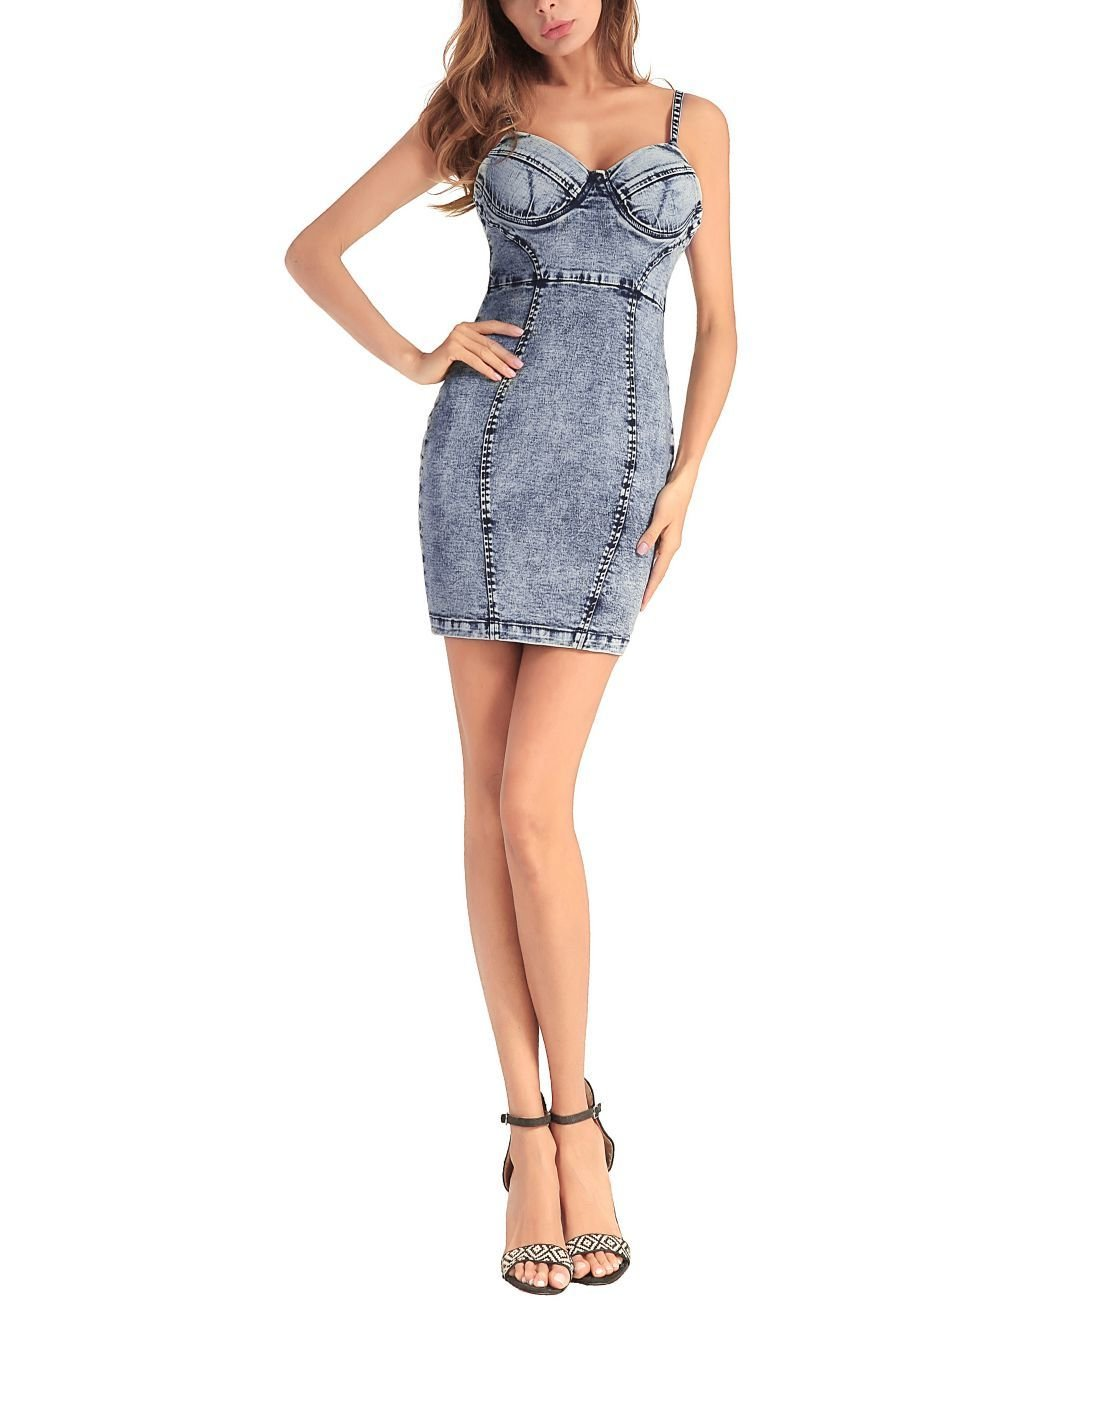 Denim Casual Dress with Bustier Top